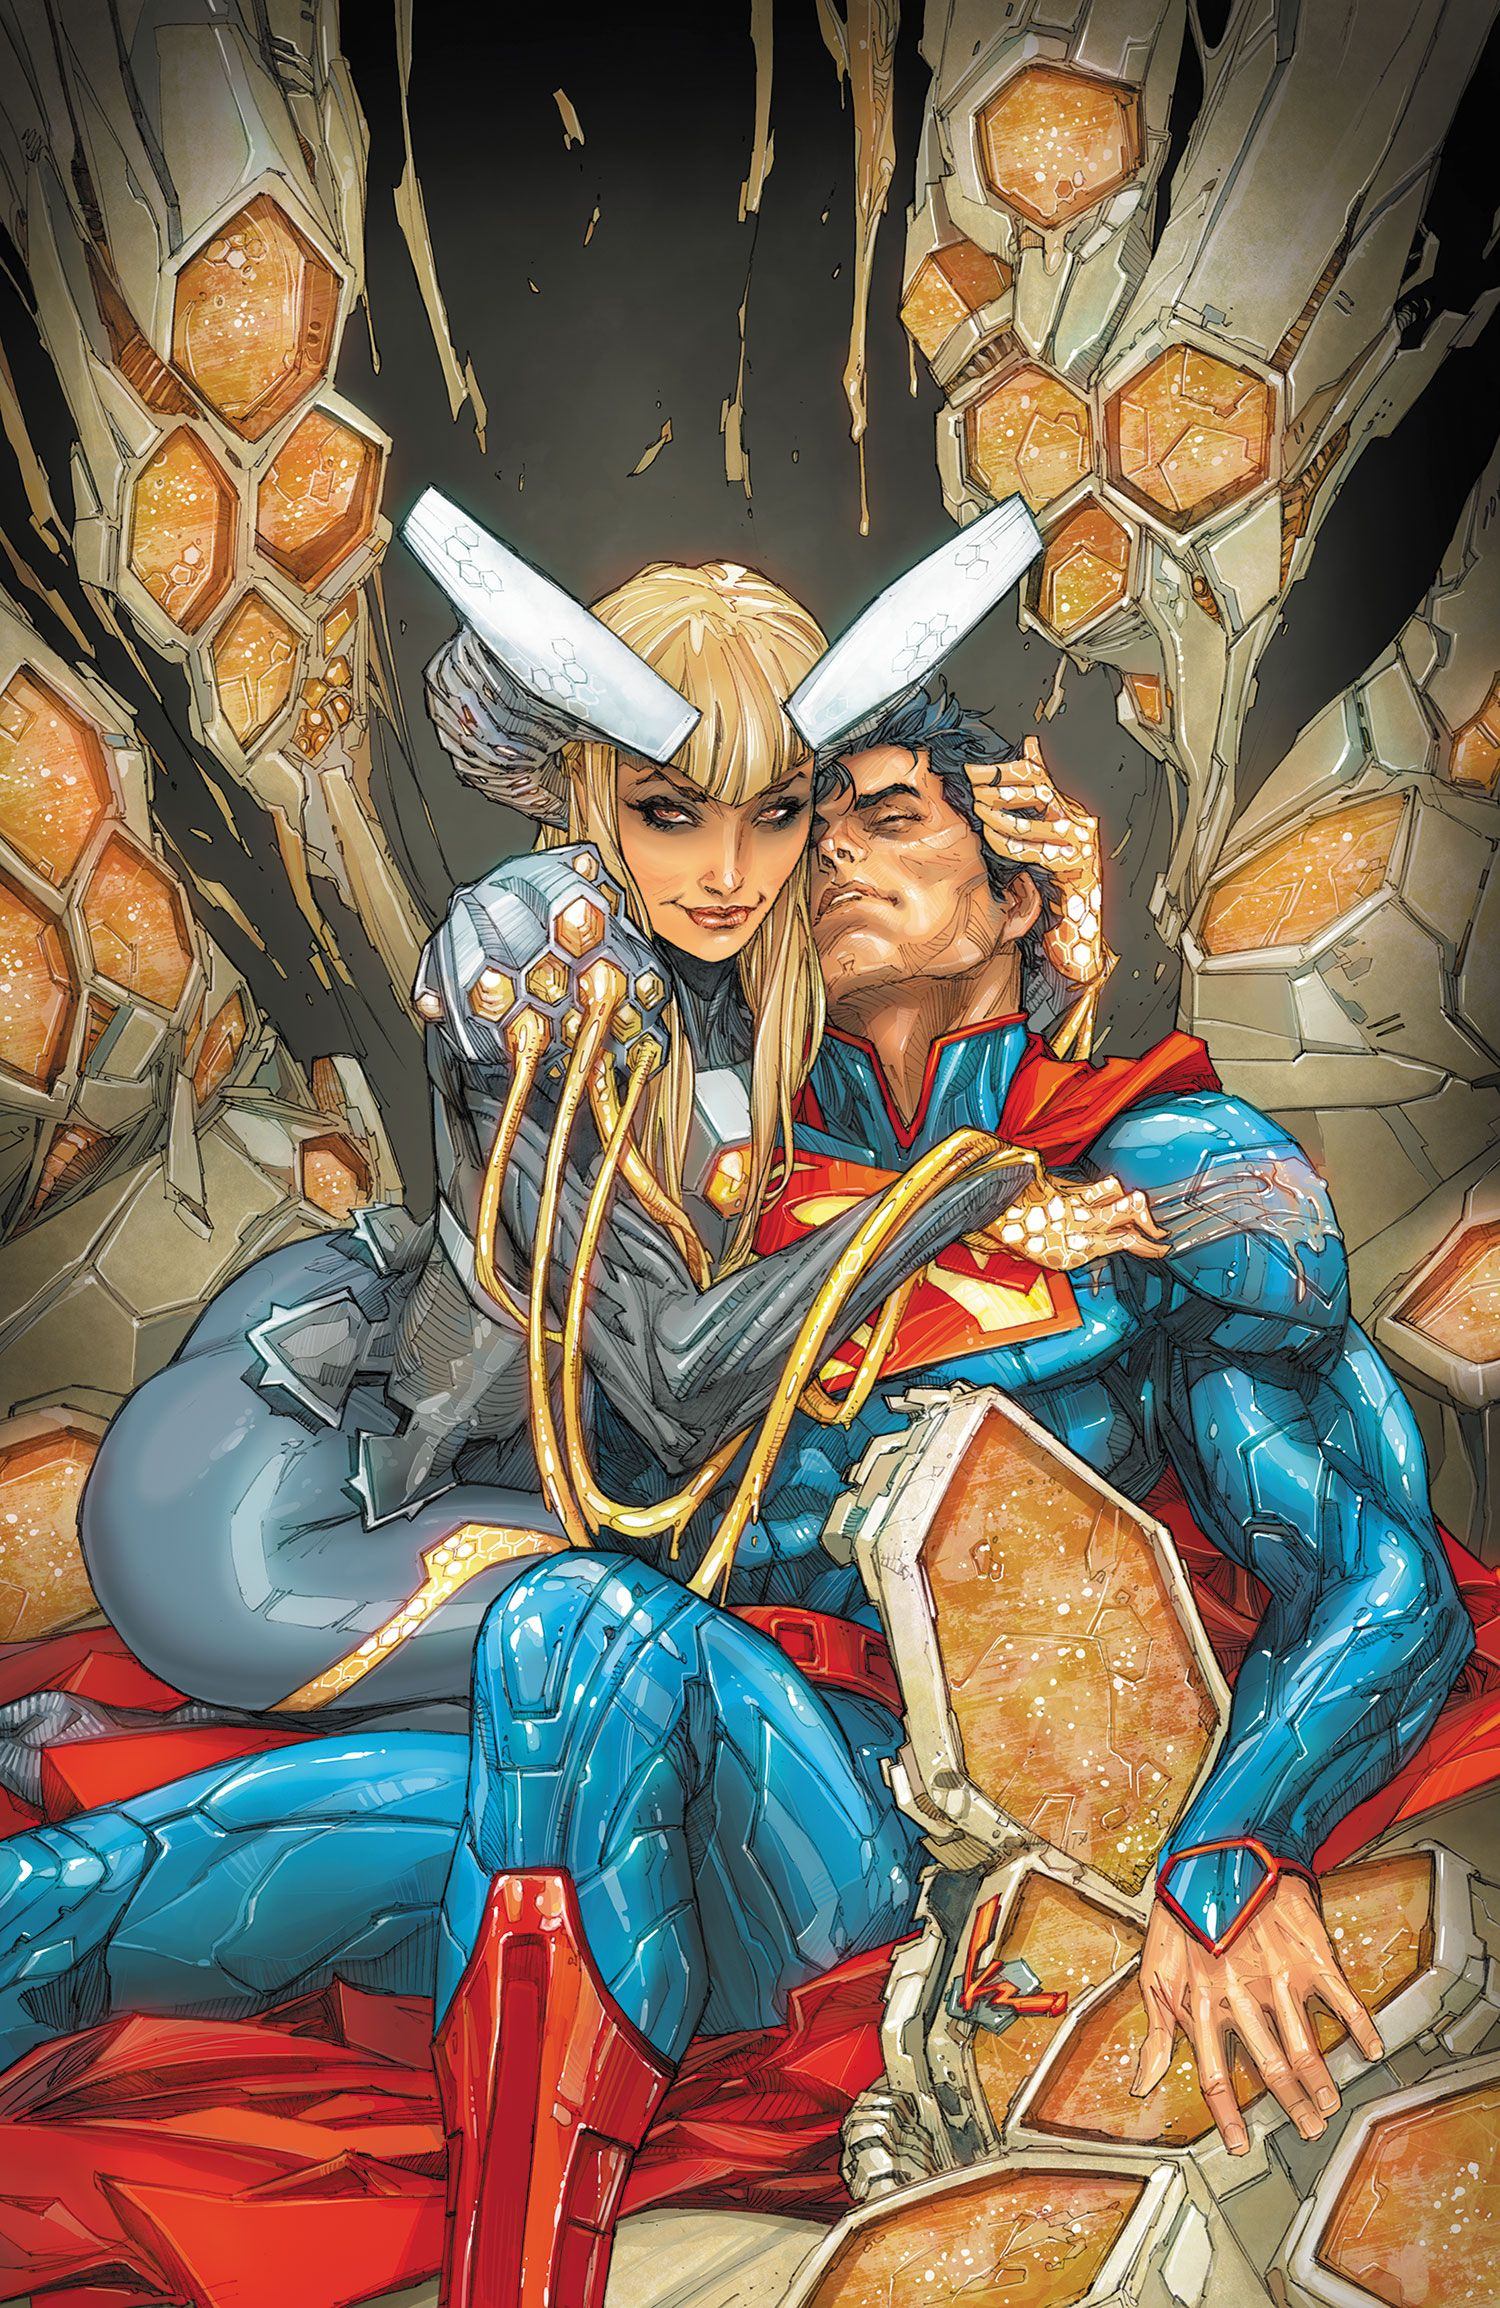 Kenneth Rocafort screenshots, images and pictures - Comic